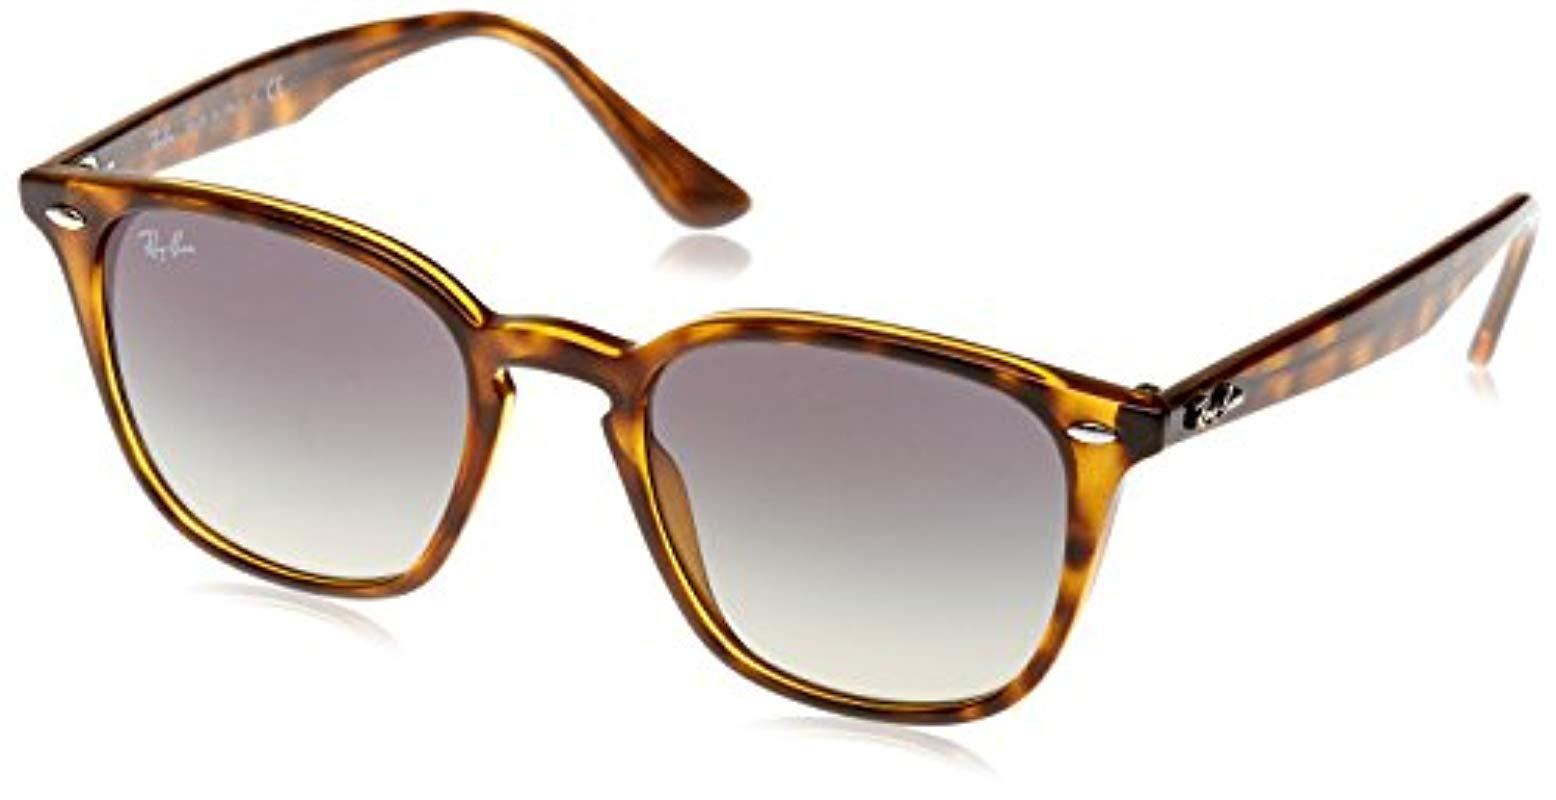 b897ad3ce1 Lyst - Ray-Ban Rb4258 Keyhole Sunglasses in Brown - Save 2%